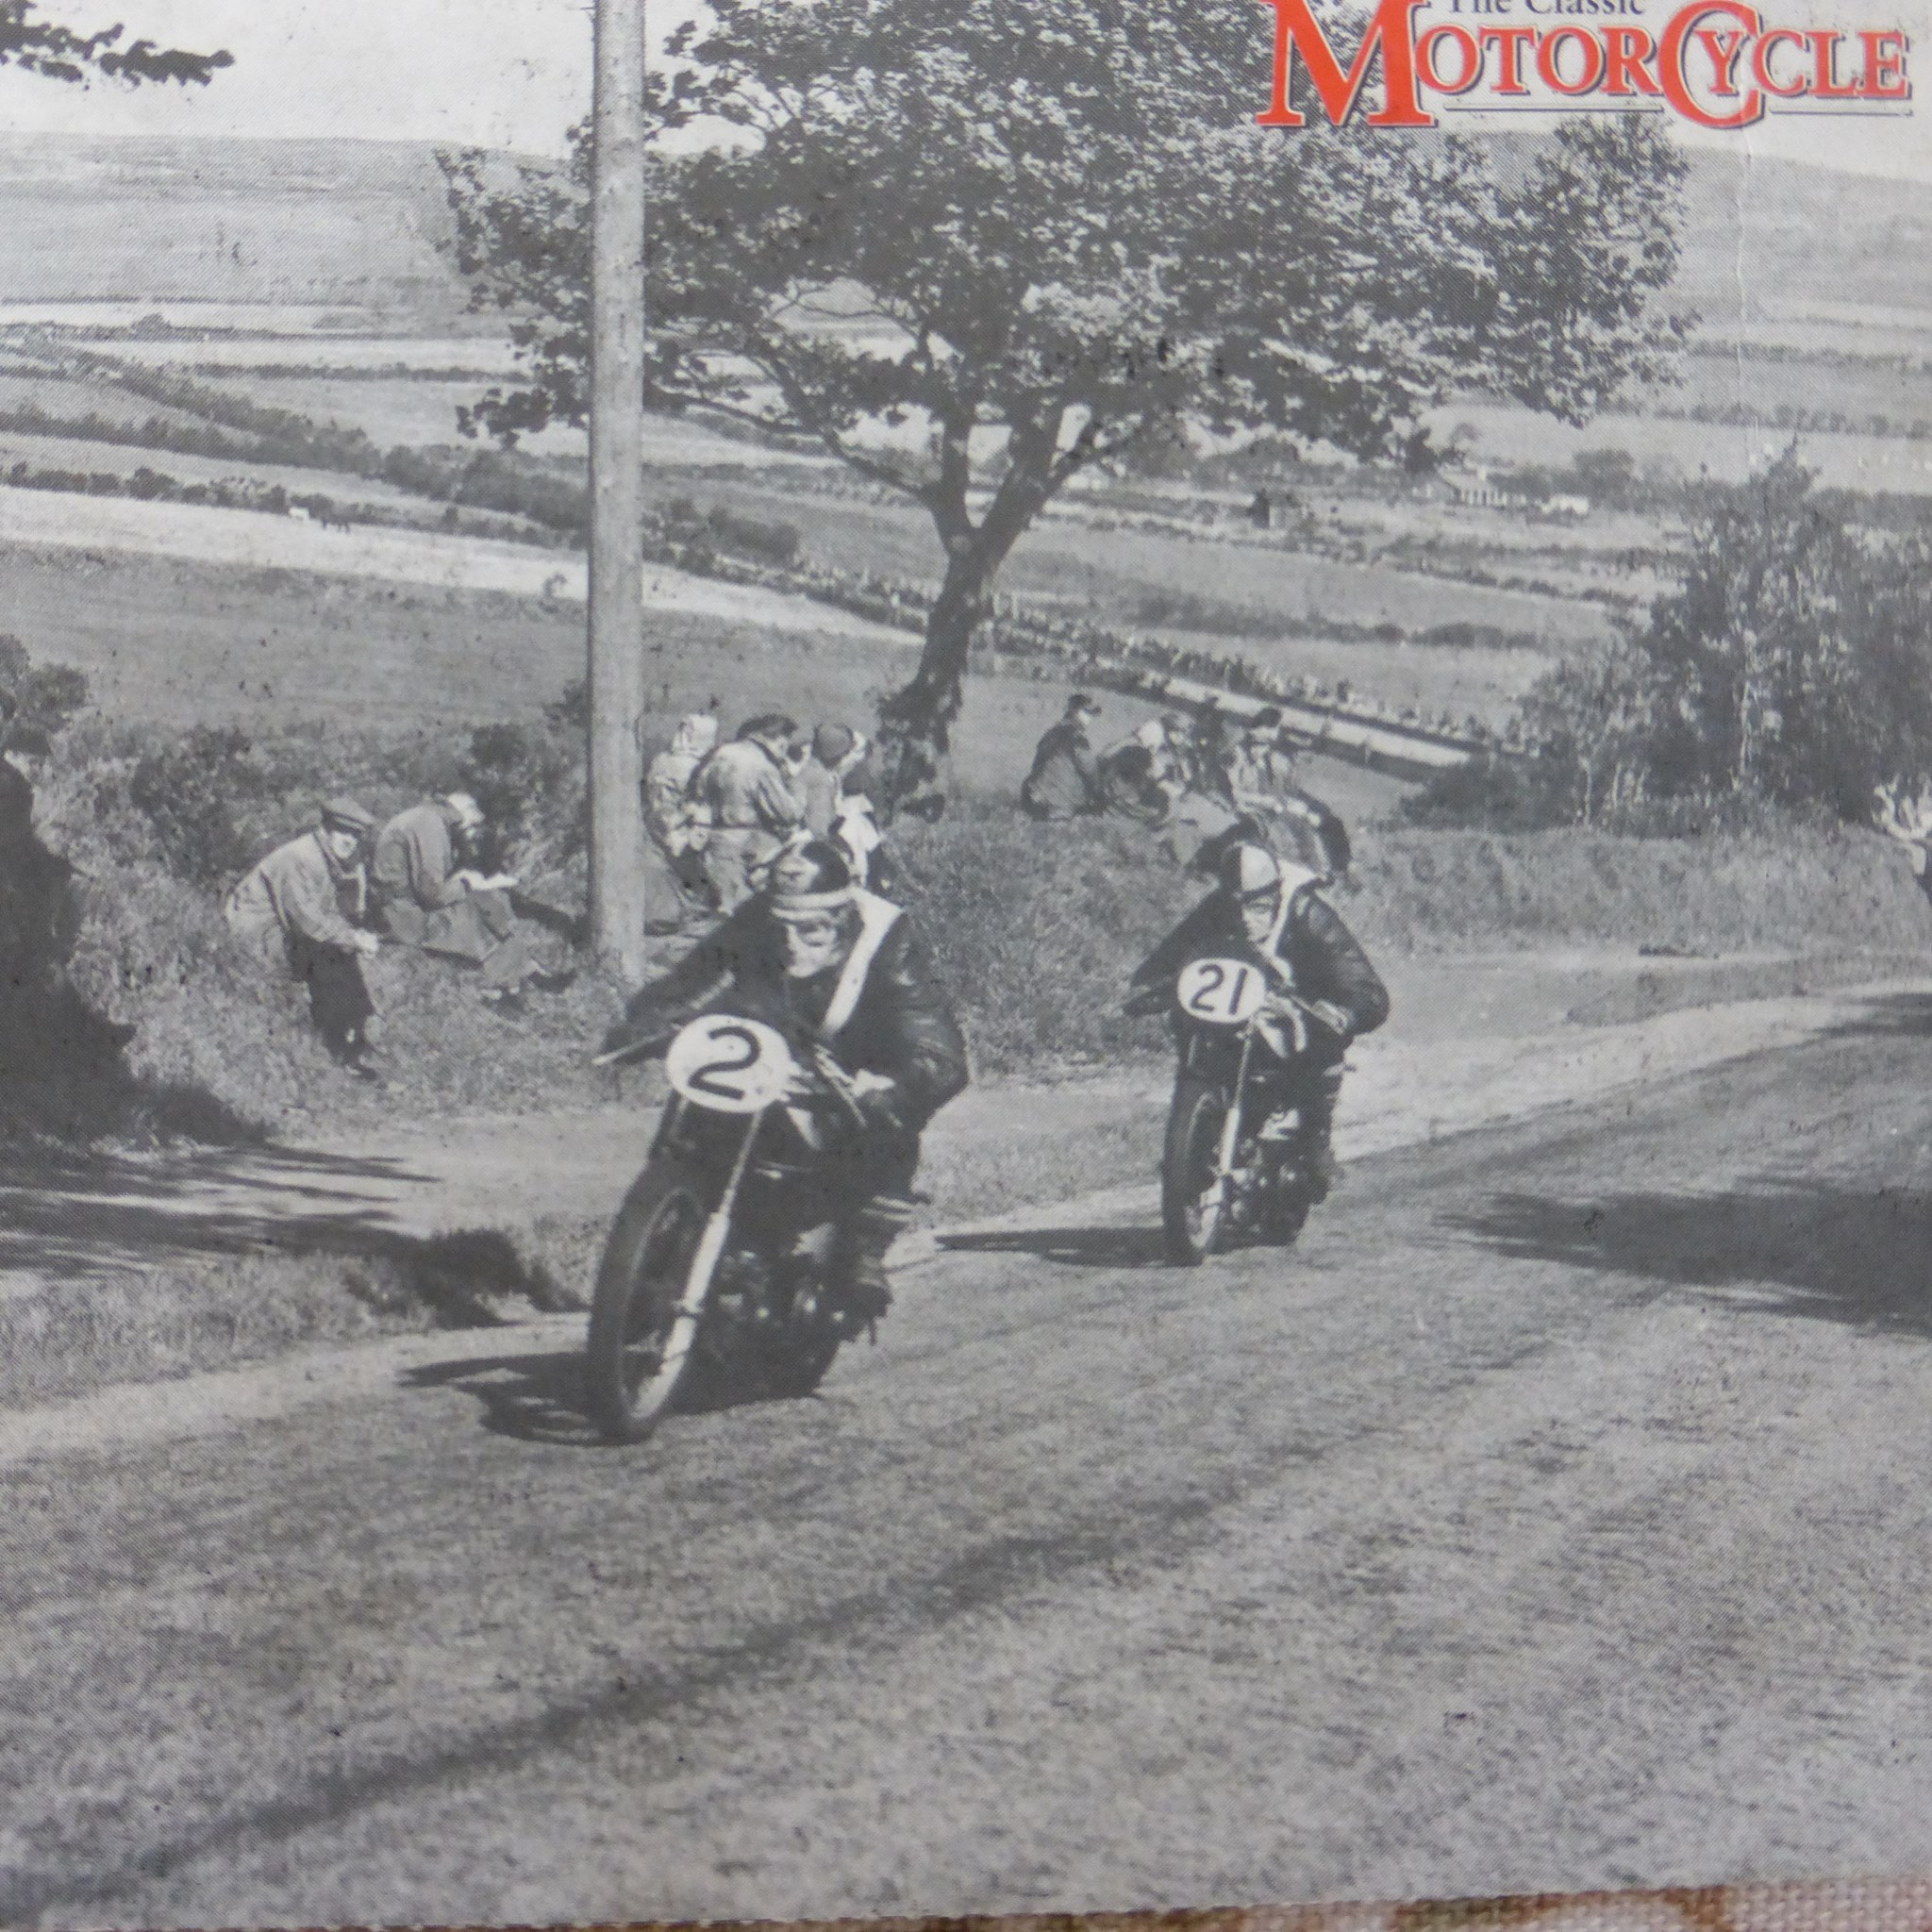 Don (21) on his way to 8th in the Senior TT 1950